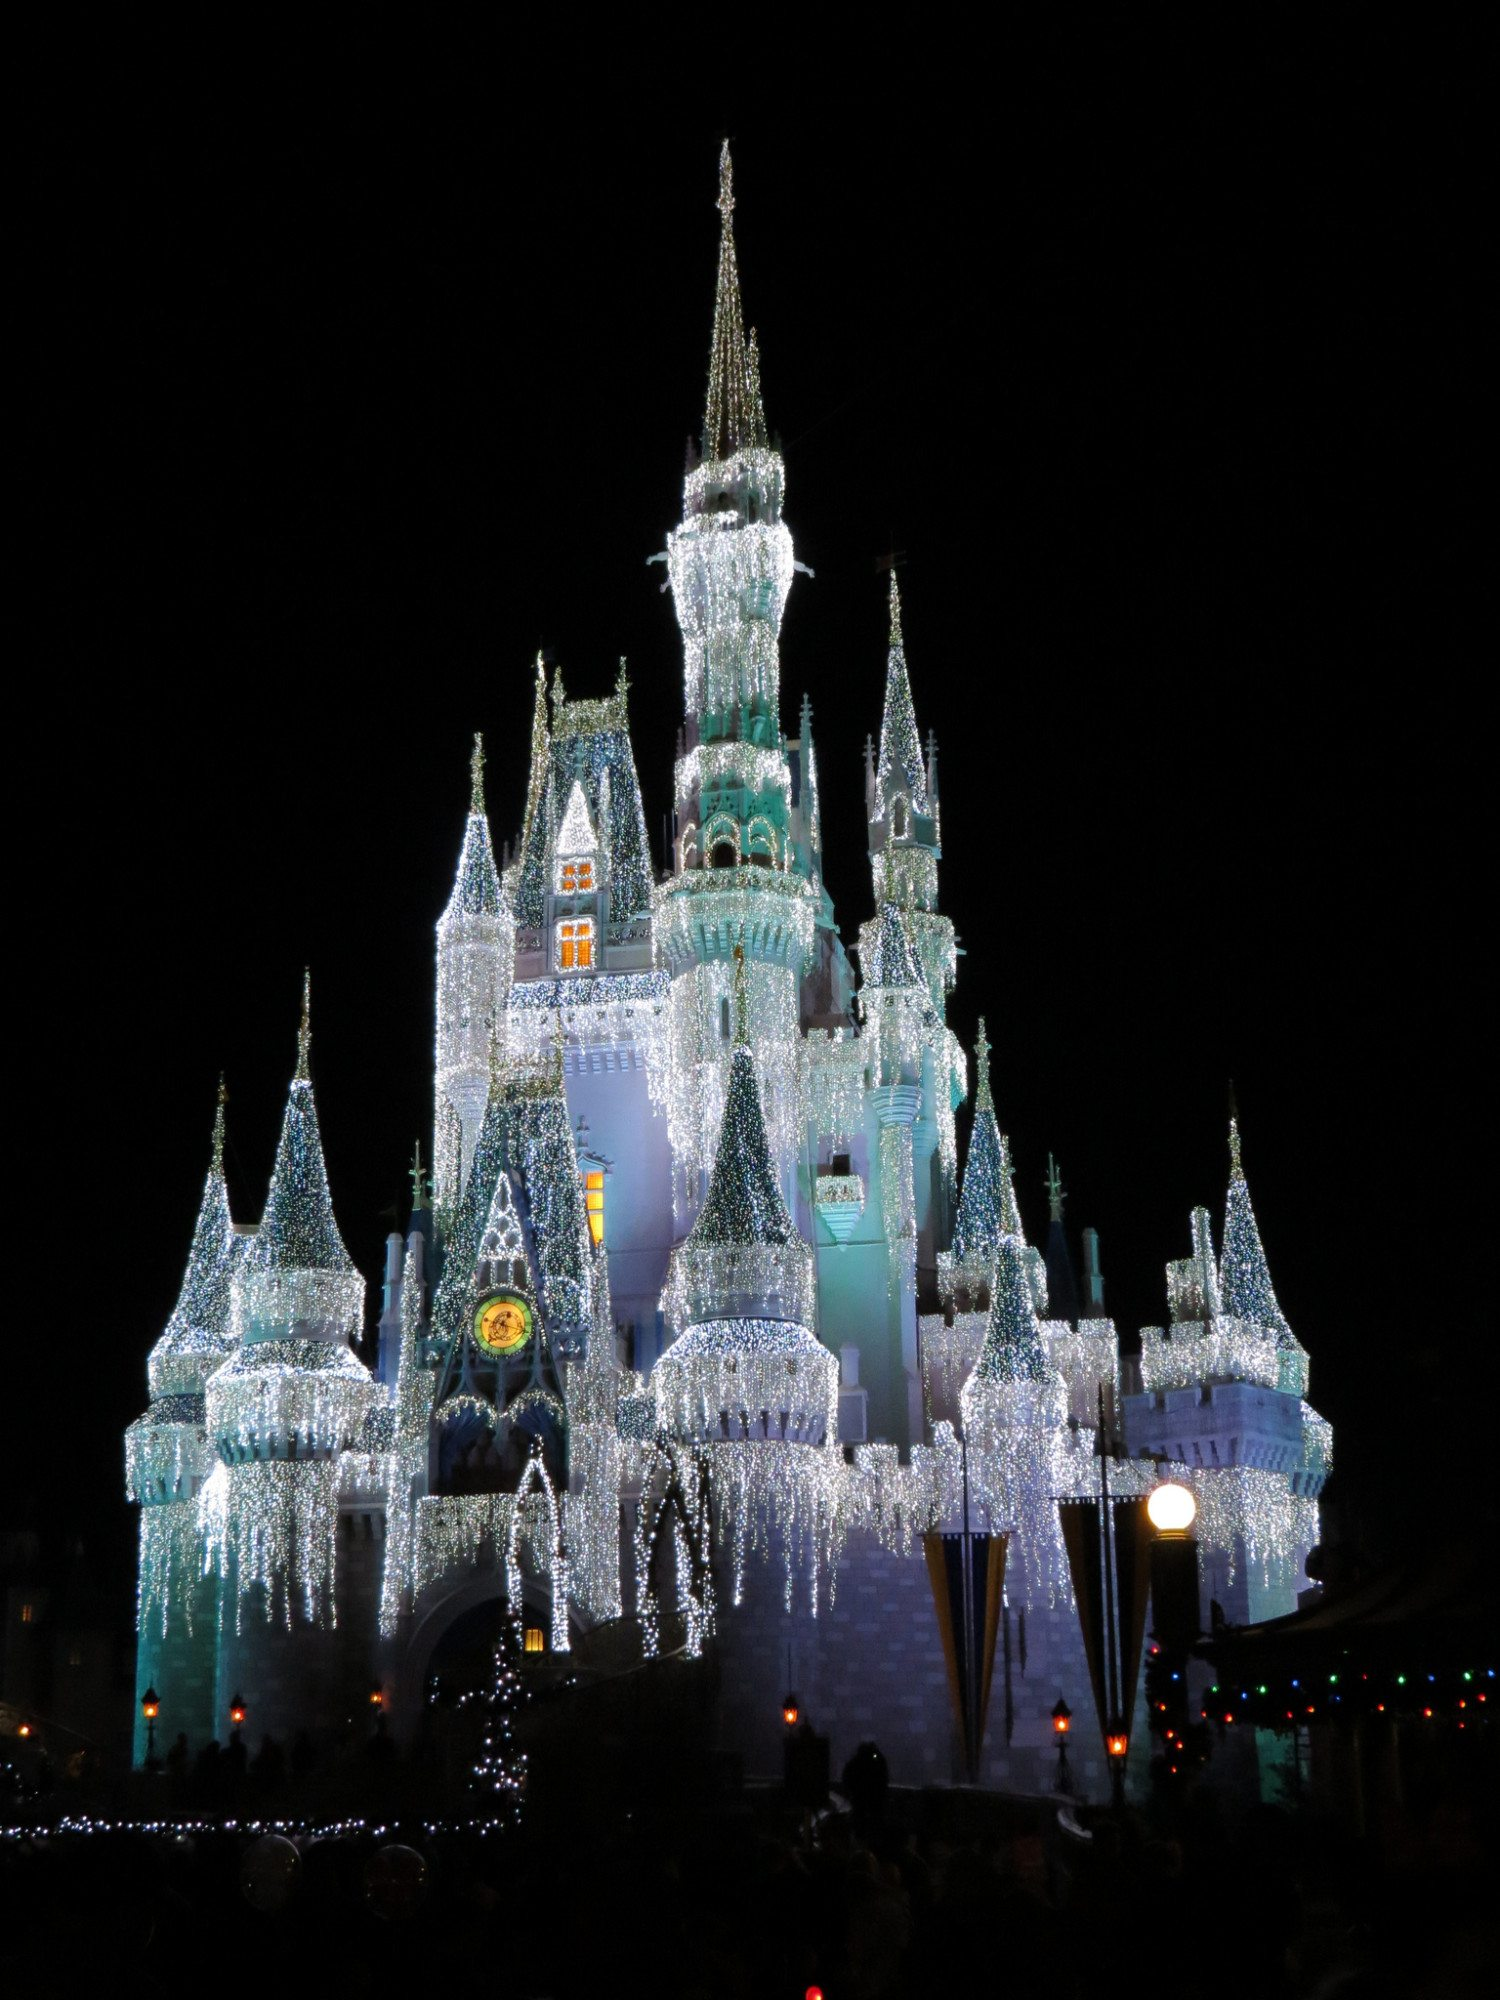 Christmas Is The Best Time To Visit Disney World - Simplemost